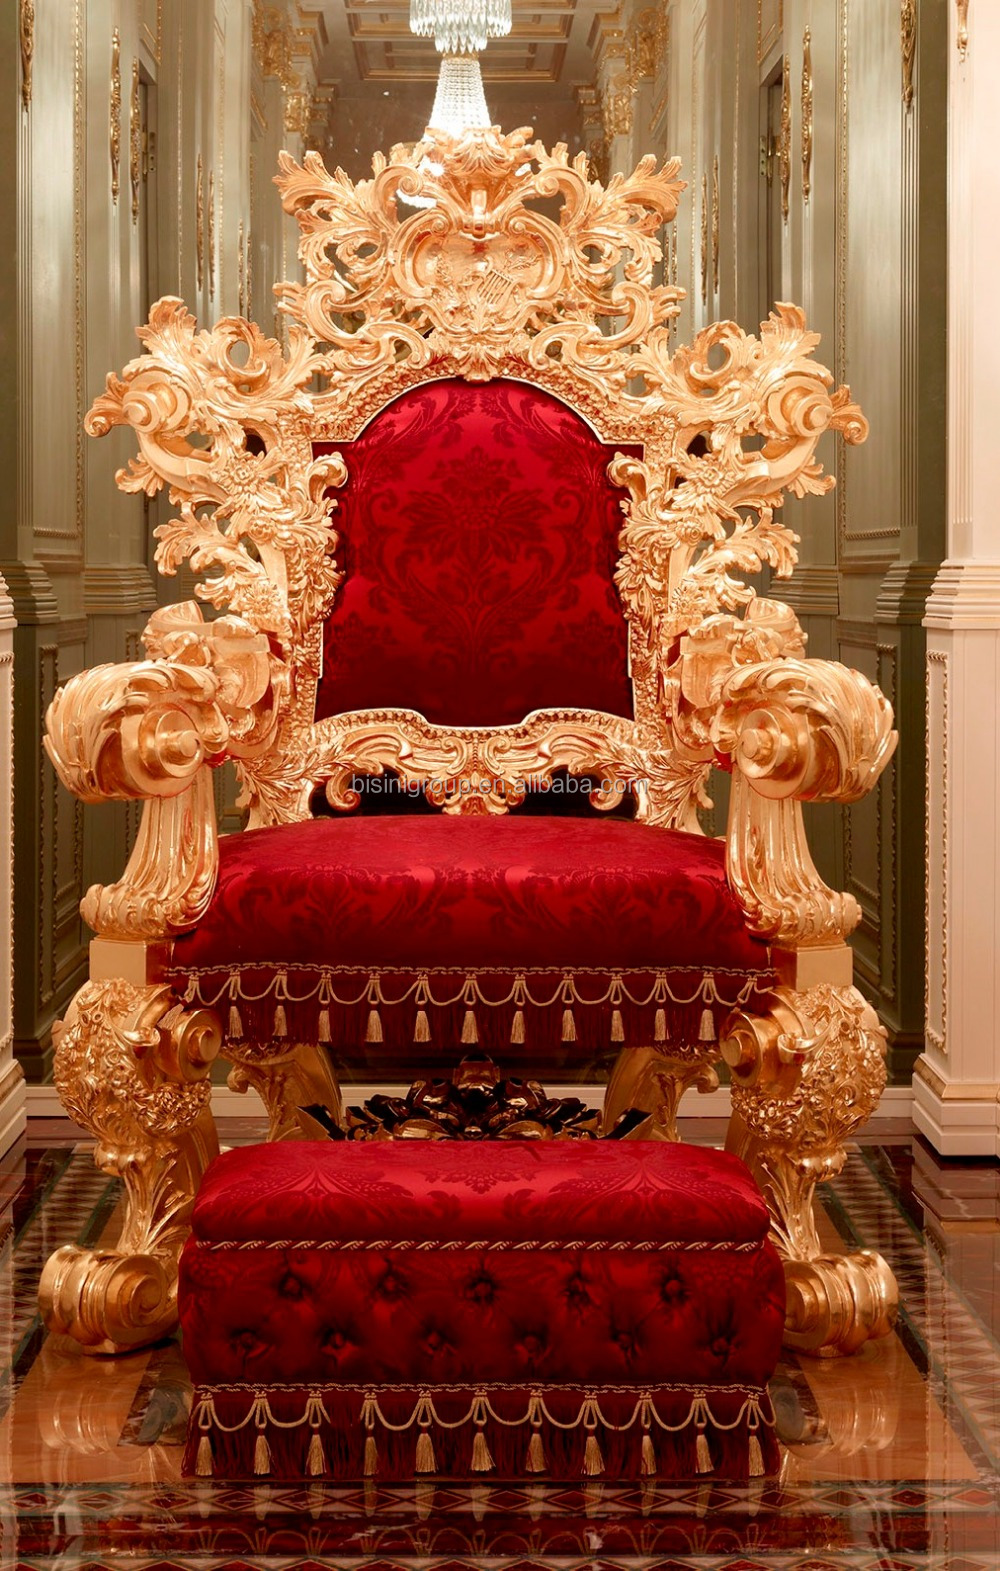 Luxurious Royal Solid Wood King Chair With Stool Imperial